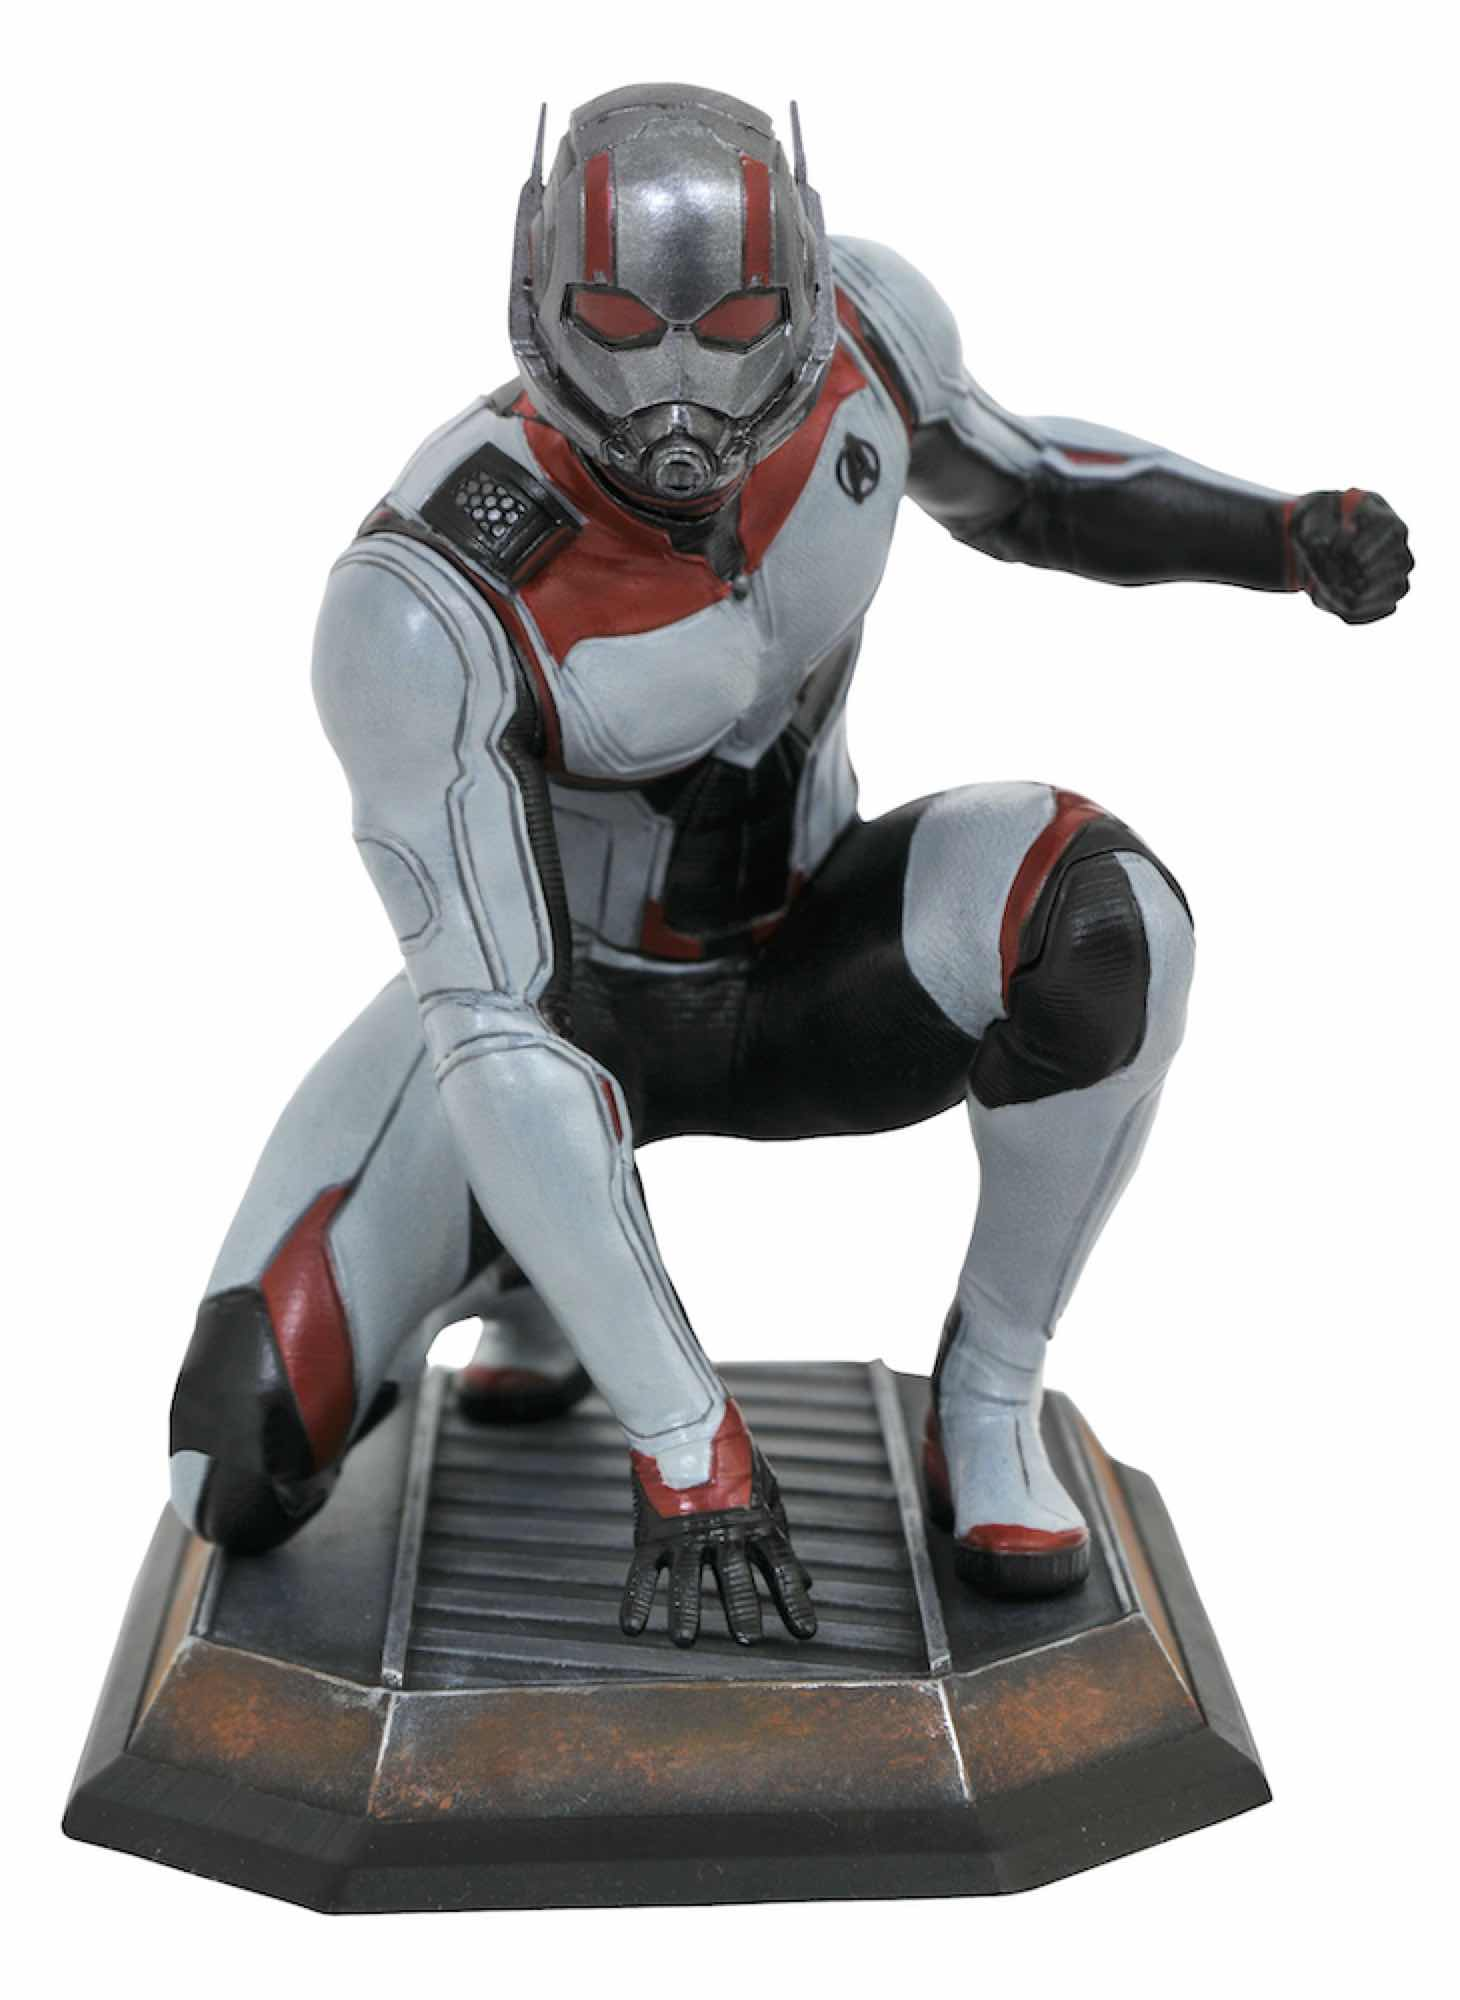 ANT-MAN DIORAMA PVC 23 CM MARVEL MOVIE GALLERY AVENGERS ENDGAME